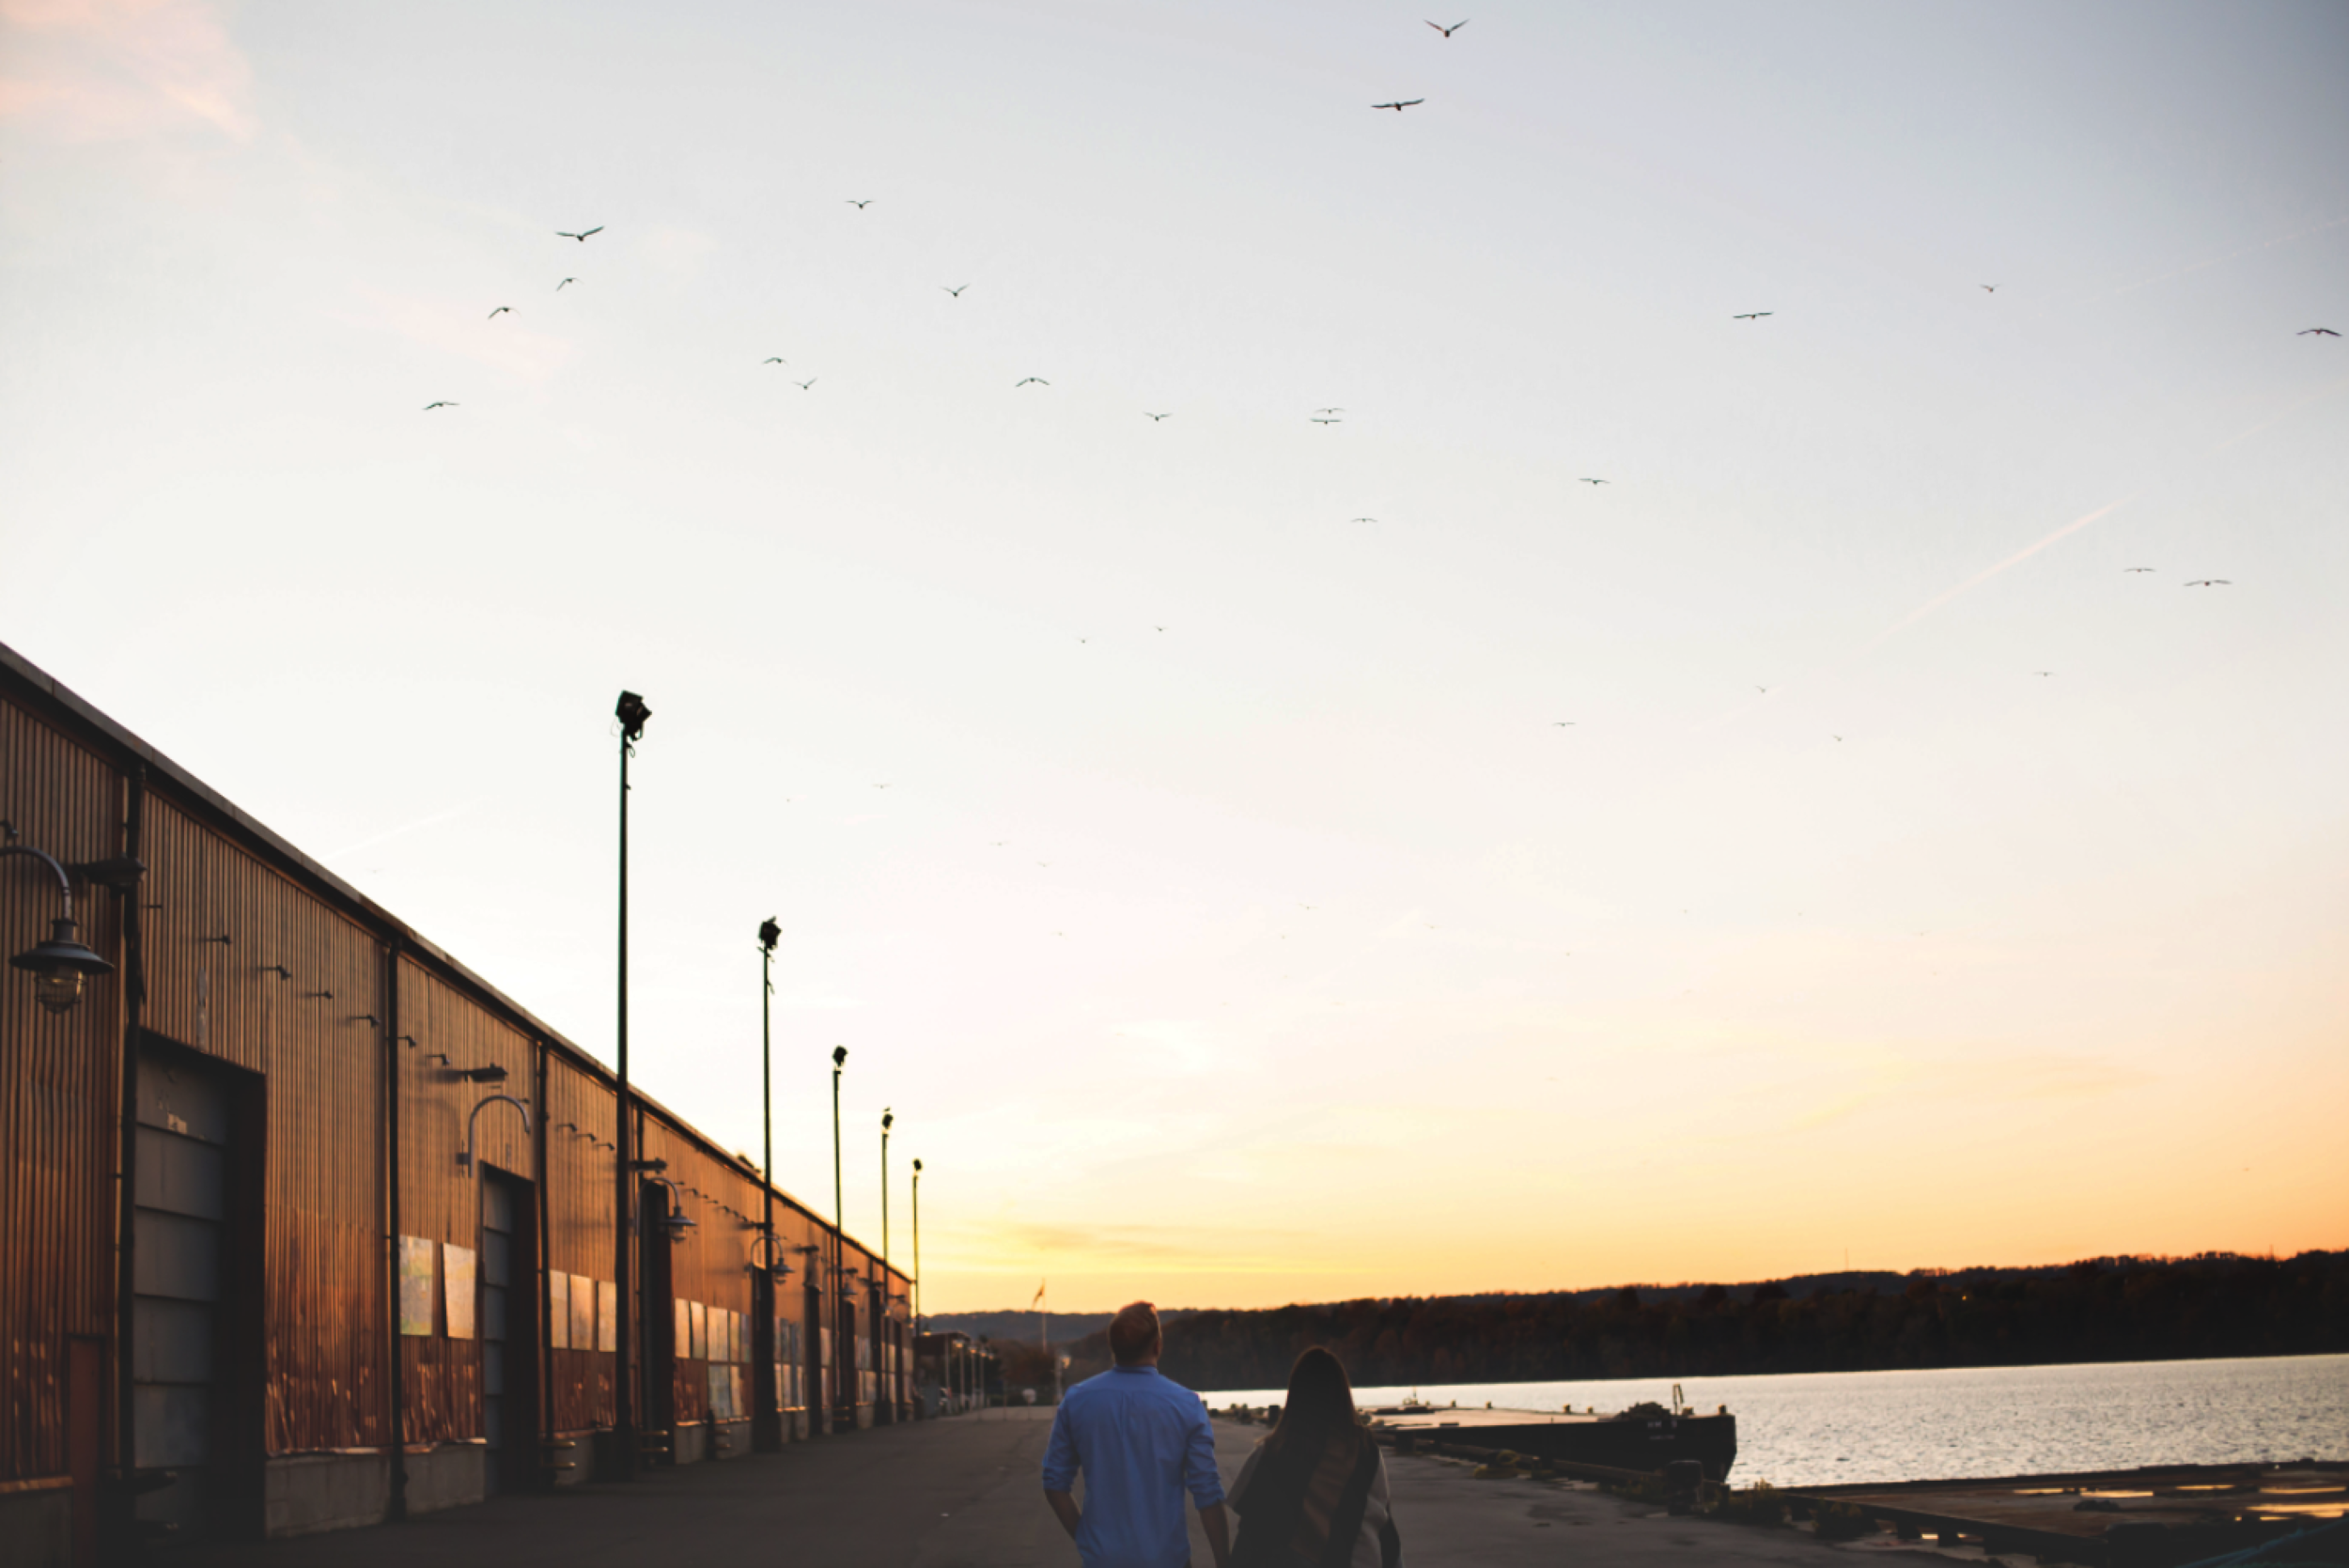 Engagement-Session-Downtown-Hamilton-Burlington-Oakville-Niagara-Toronto-Wedding-Photographer-Engaged-Photography-Waterfront-Urban-HamOnt-Engaged-Golden-Hour-Moments-by-Lauren-Photo-Image-11.png